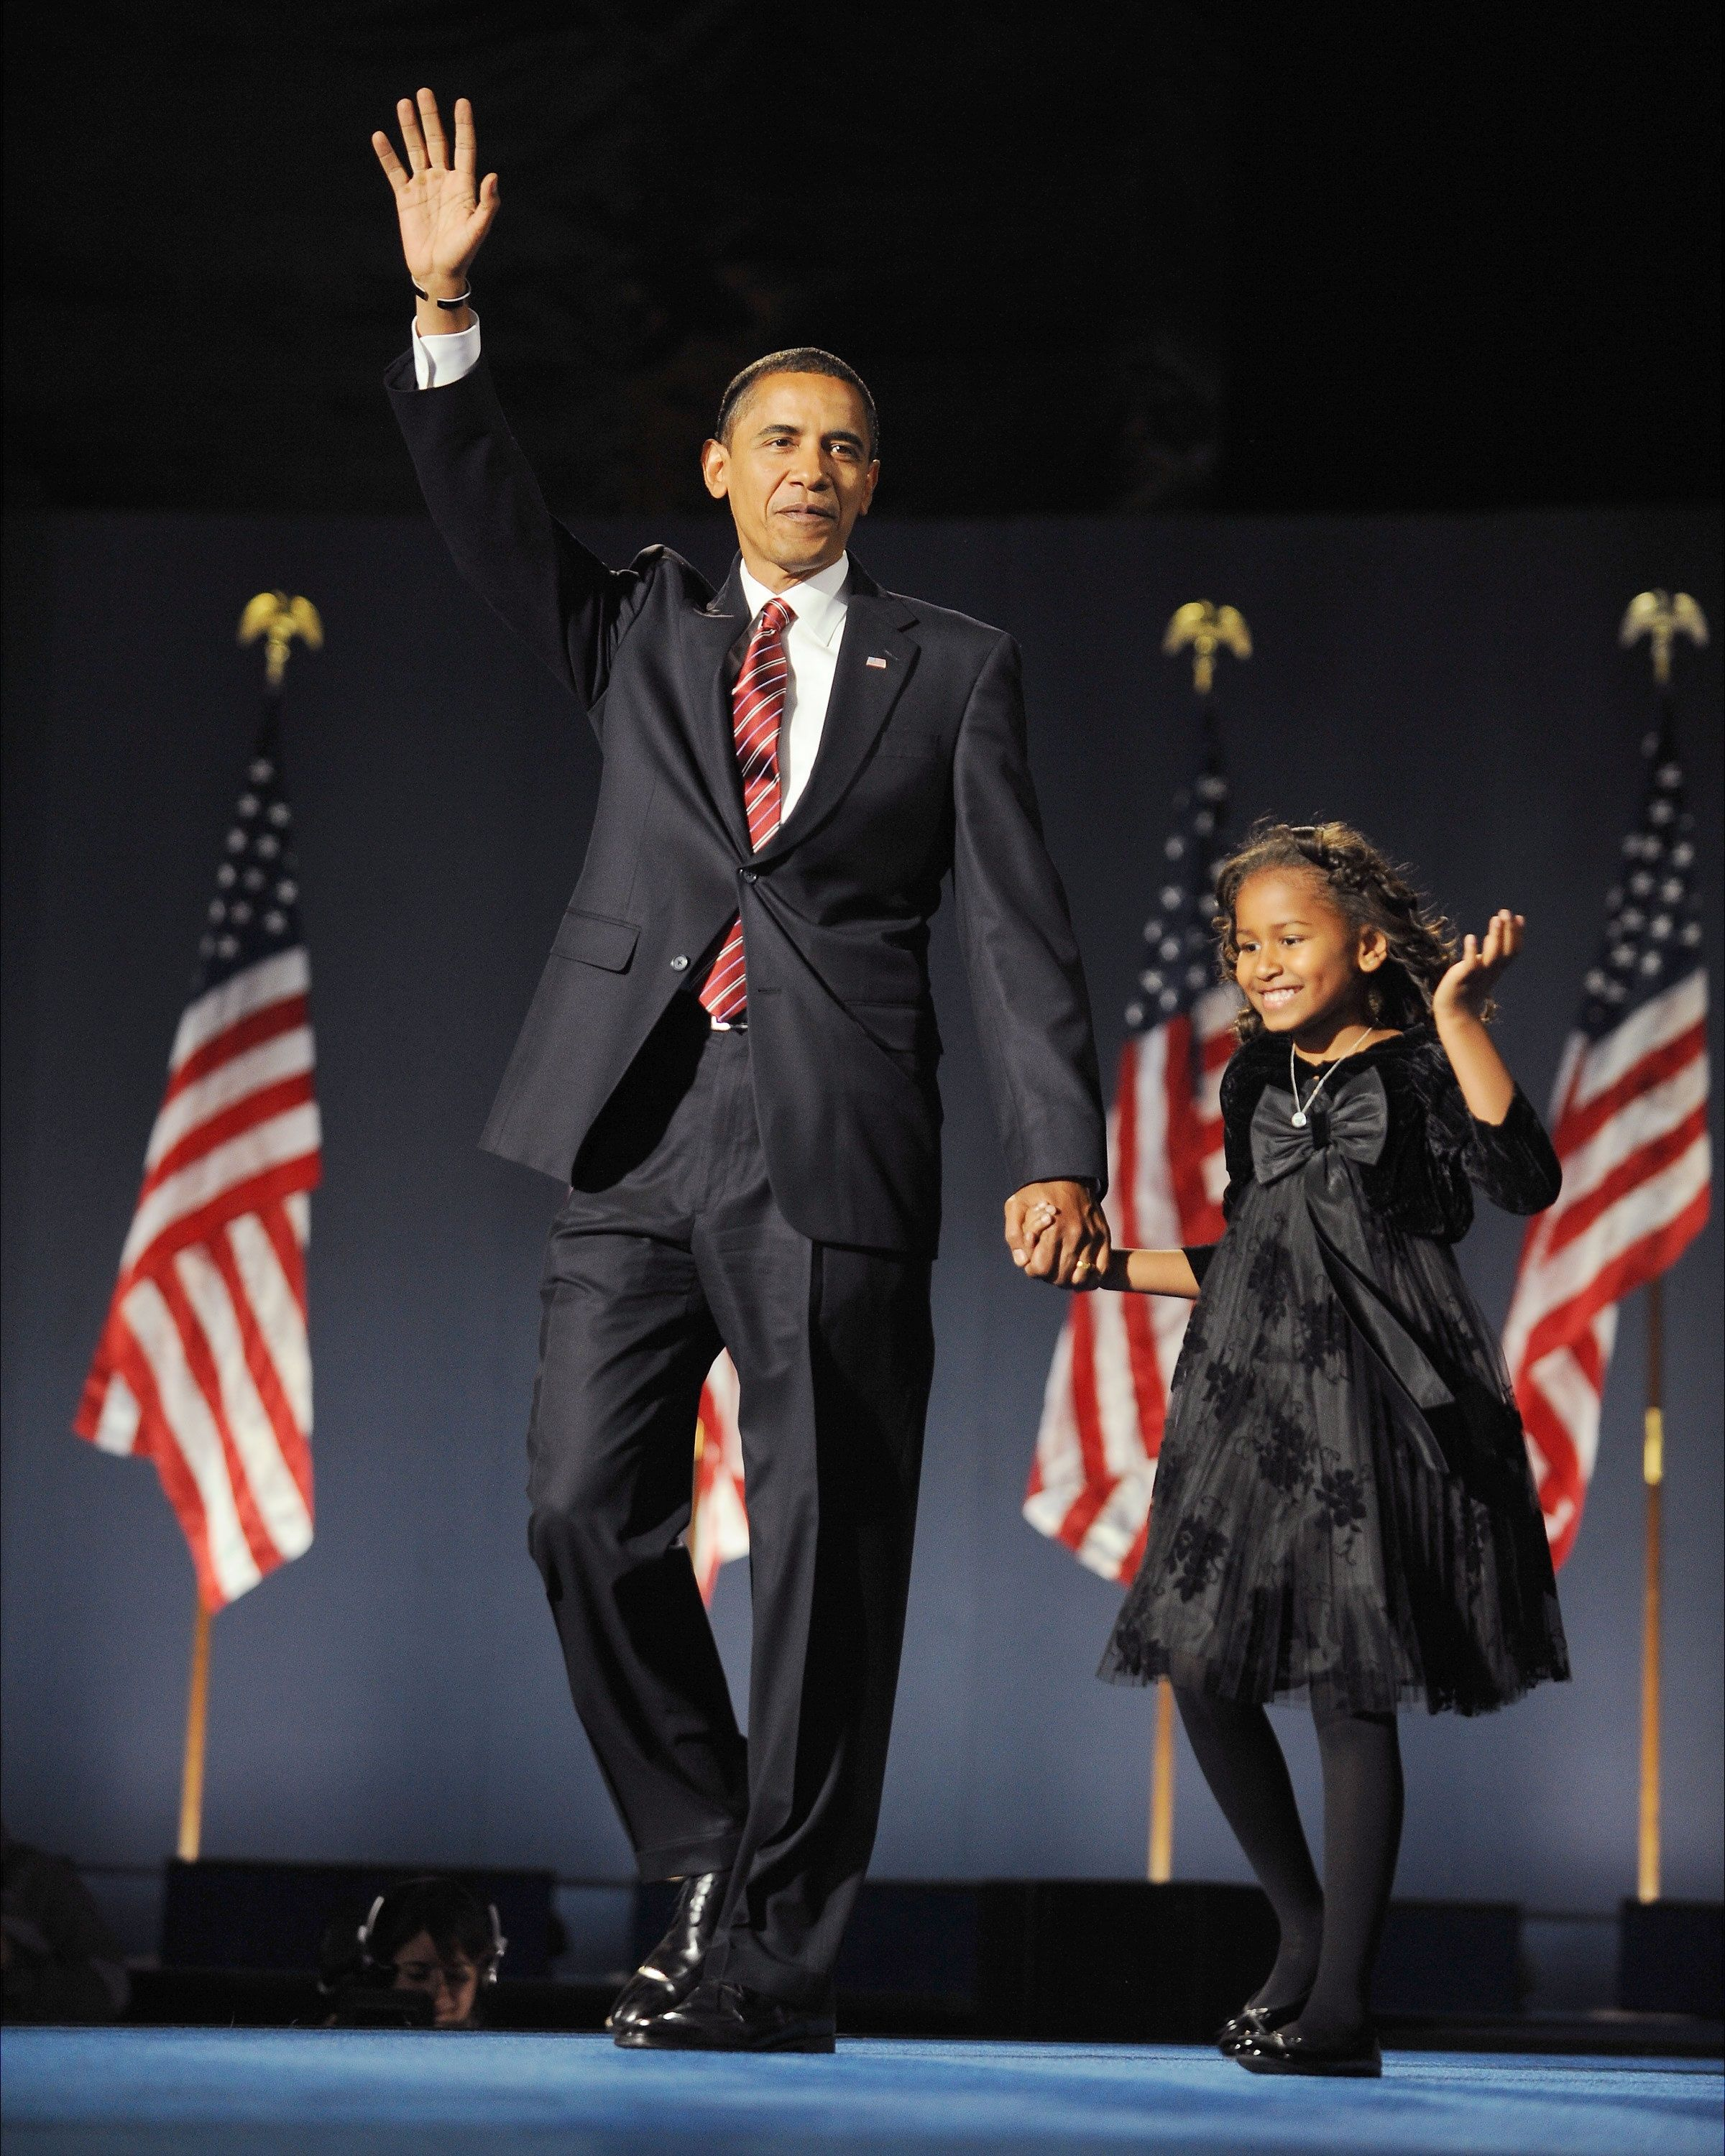 <p>President-elect Obama and Sasha on election night in Chicago.  (Ron Antonelli/NY Daily News Archive via Getty Images)</p>